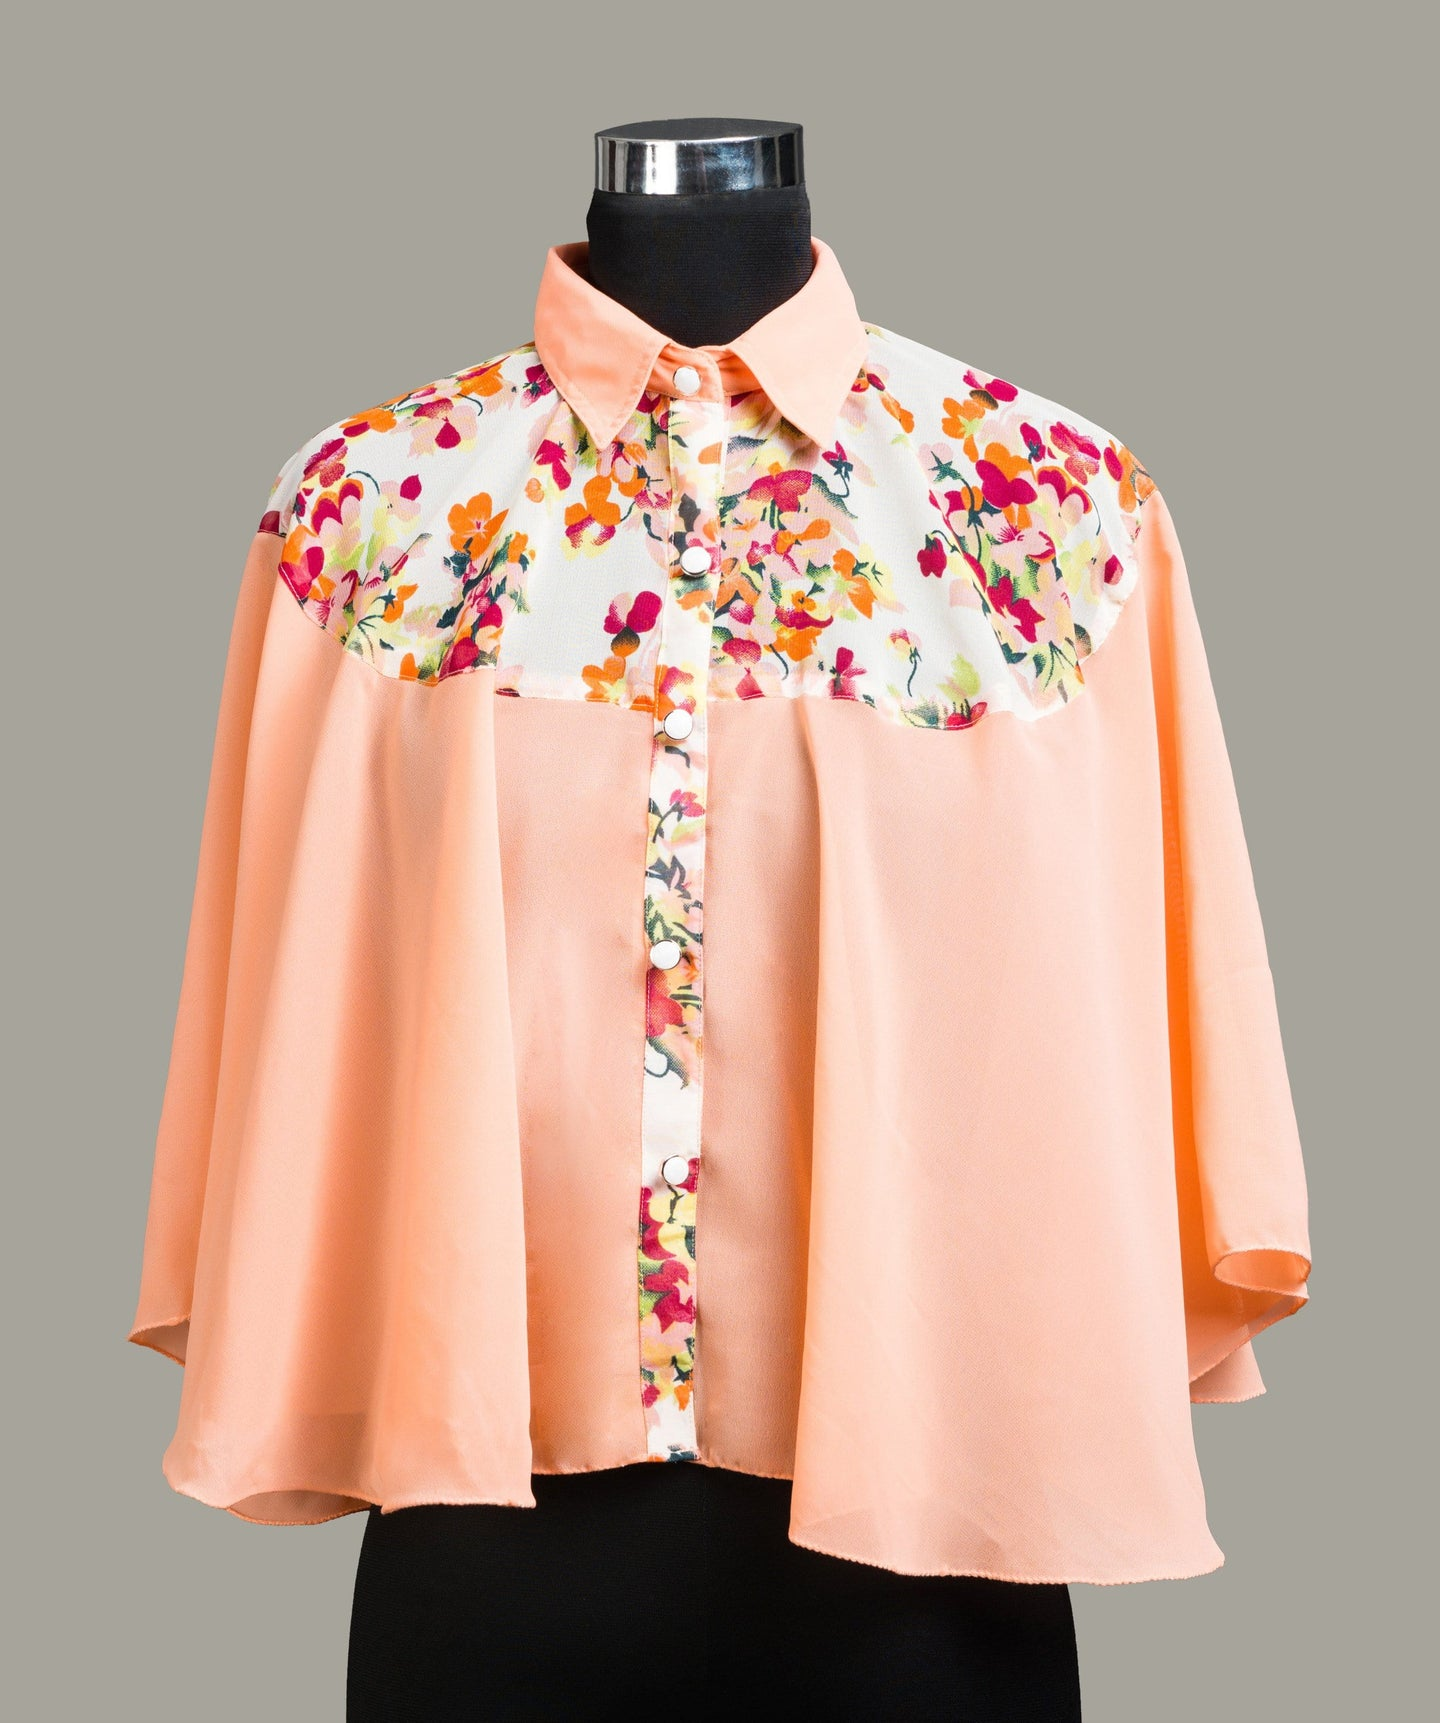 Floral Printed Cape/Shirt